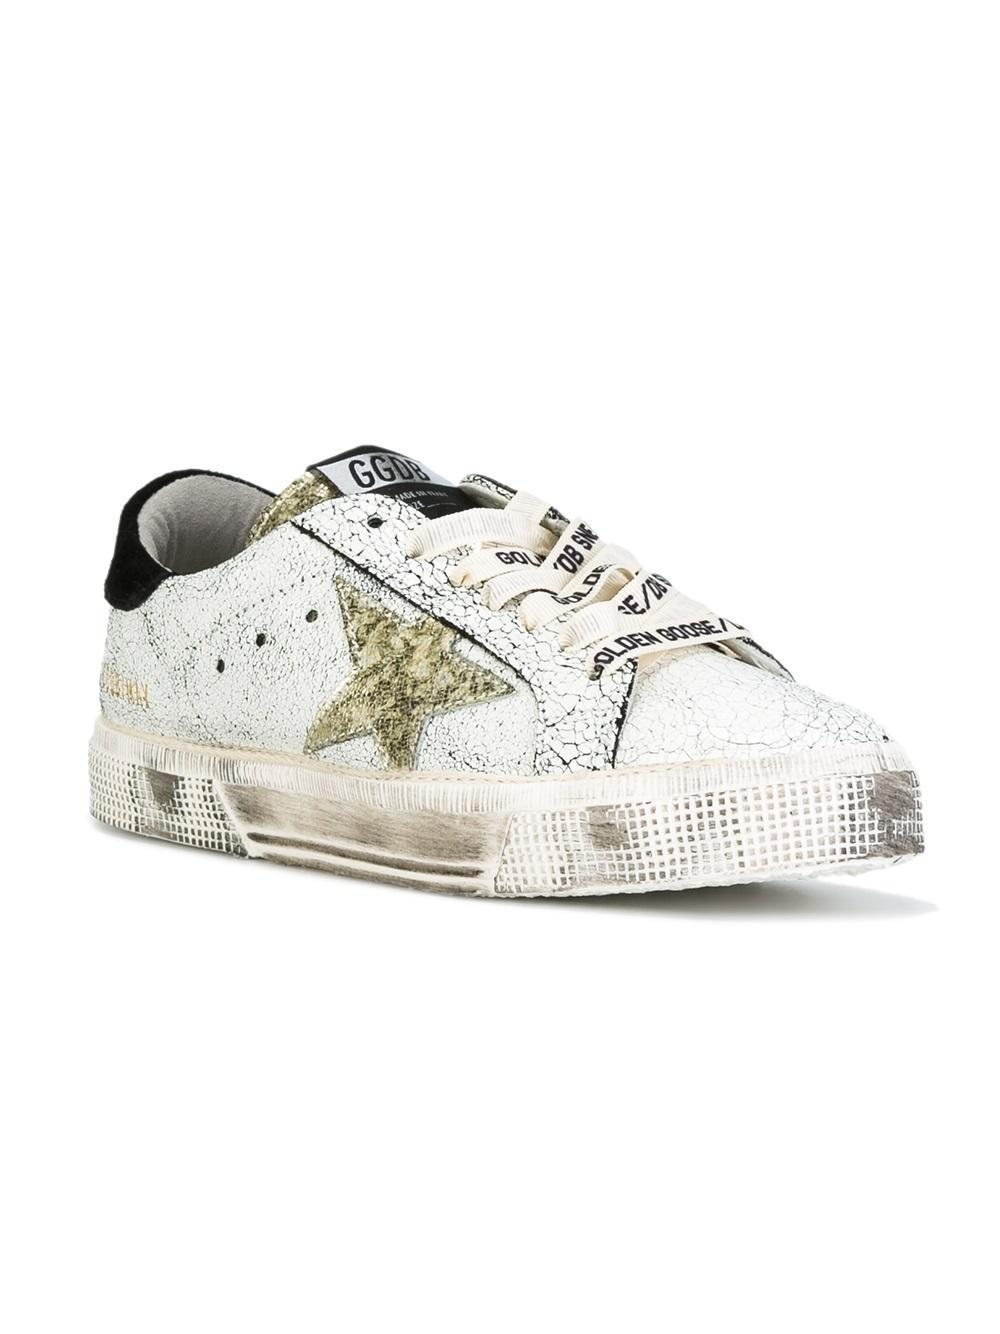 lyst golden goose deluxe brand may sneakers in white. Black Bedroom Furniture Sets. Home Design Ideas